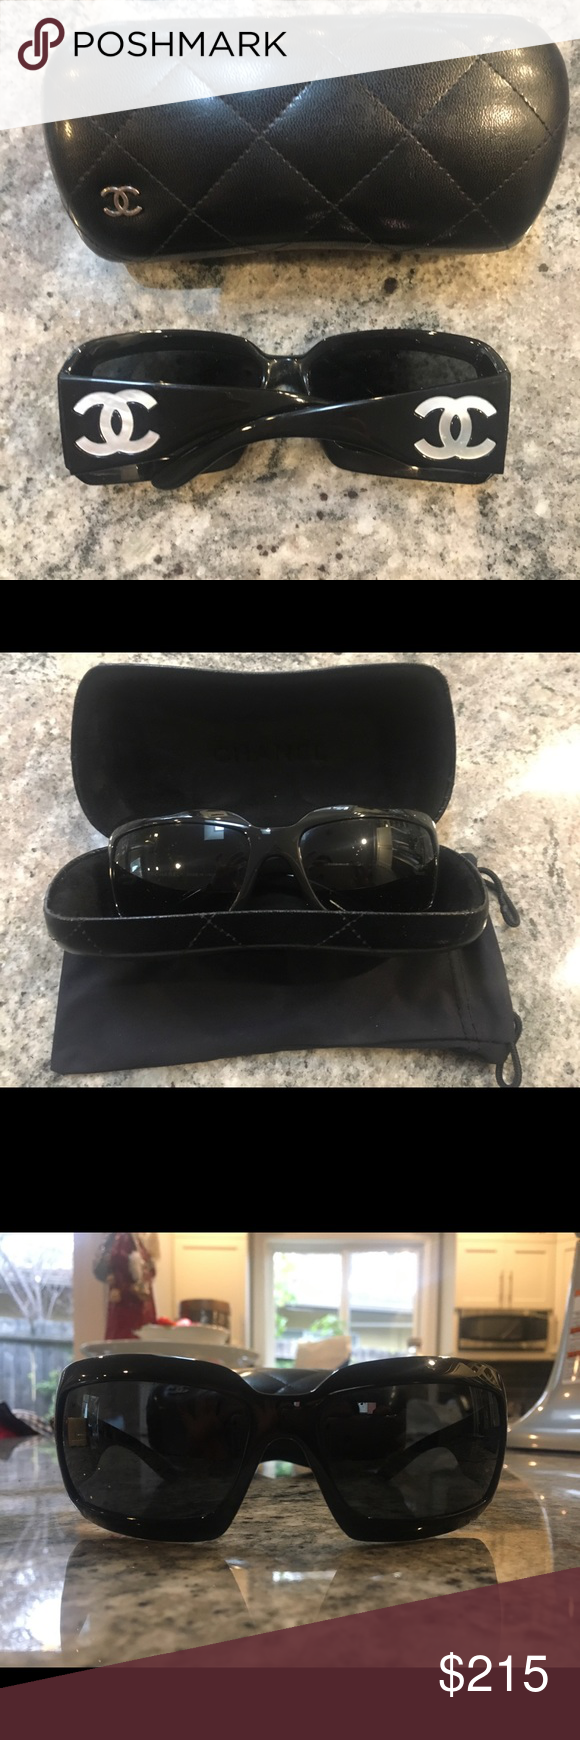 cf61824c5cd CC Mother of Pearl Sunglasses    Hard to find this iconic pair of Chanel  glasses. No longer made.   ▫️Chanel 5076h ▫️Black Mother of Pearl Sunglasses  ...